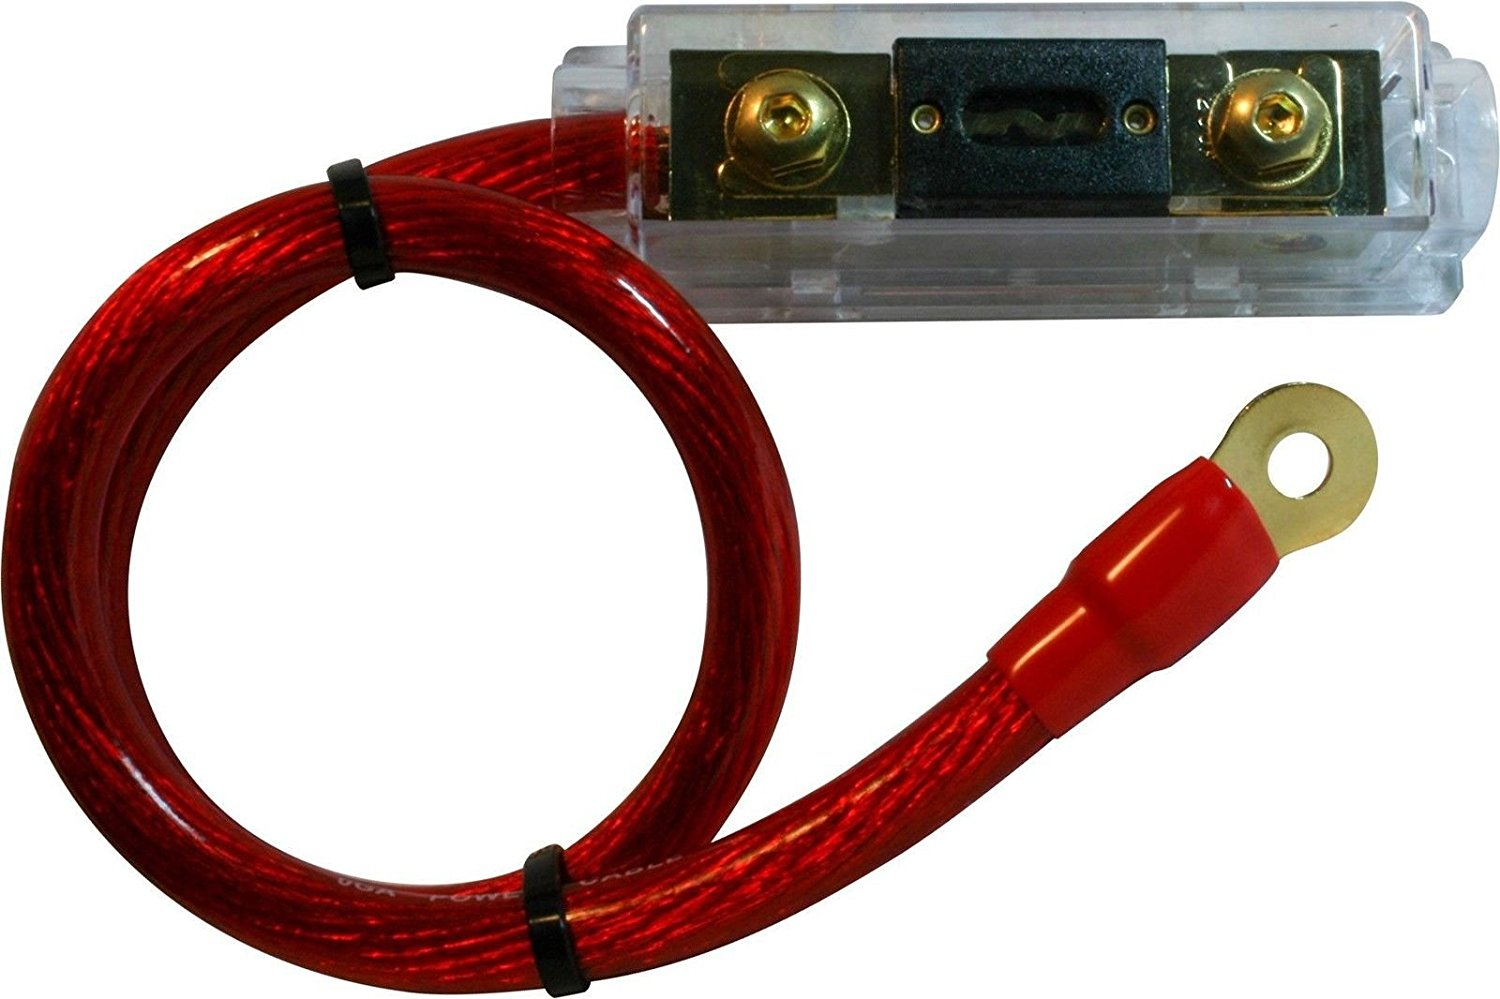 Ga Fuse Box Facts About Wiring Diagram Duluth Cheap Anl Inline Holder Find Deals On Rh Guide Alibaba Com